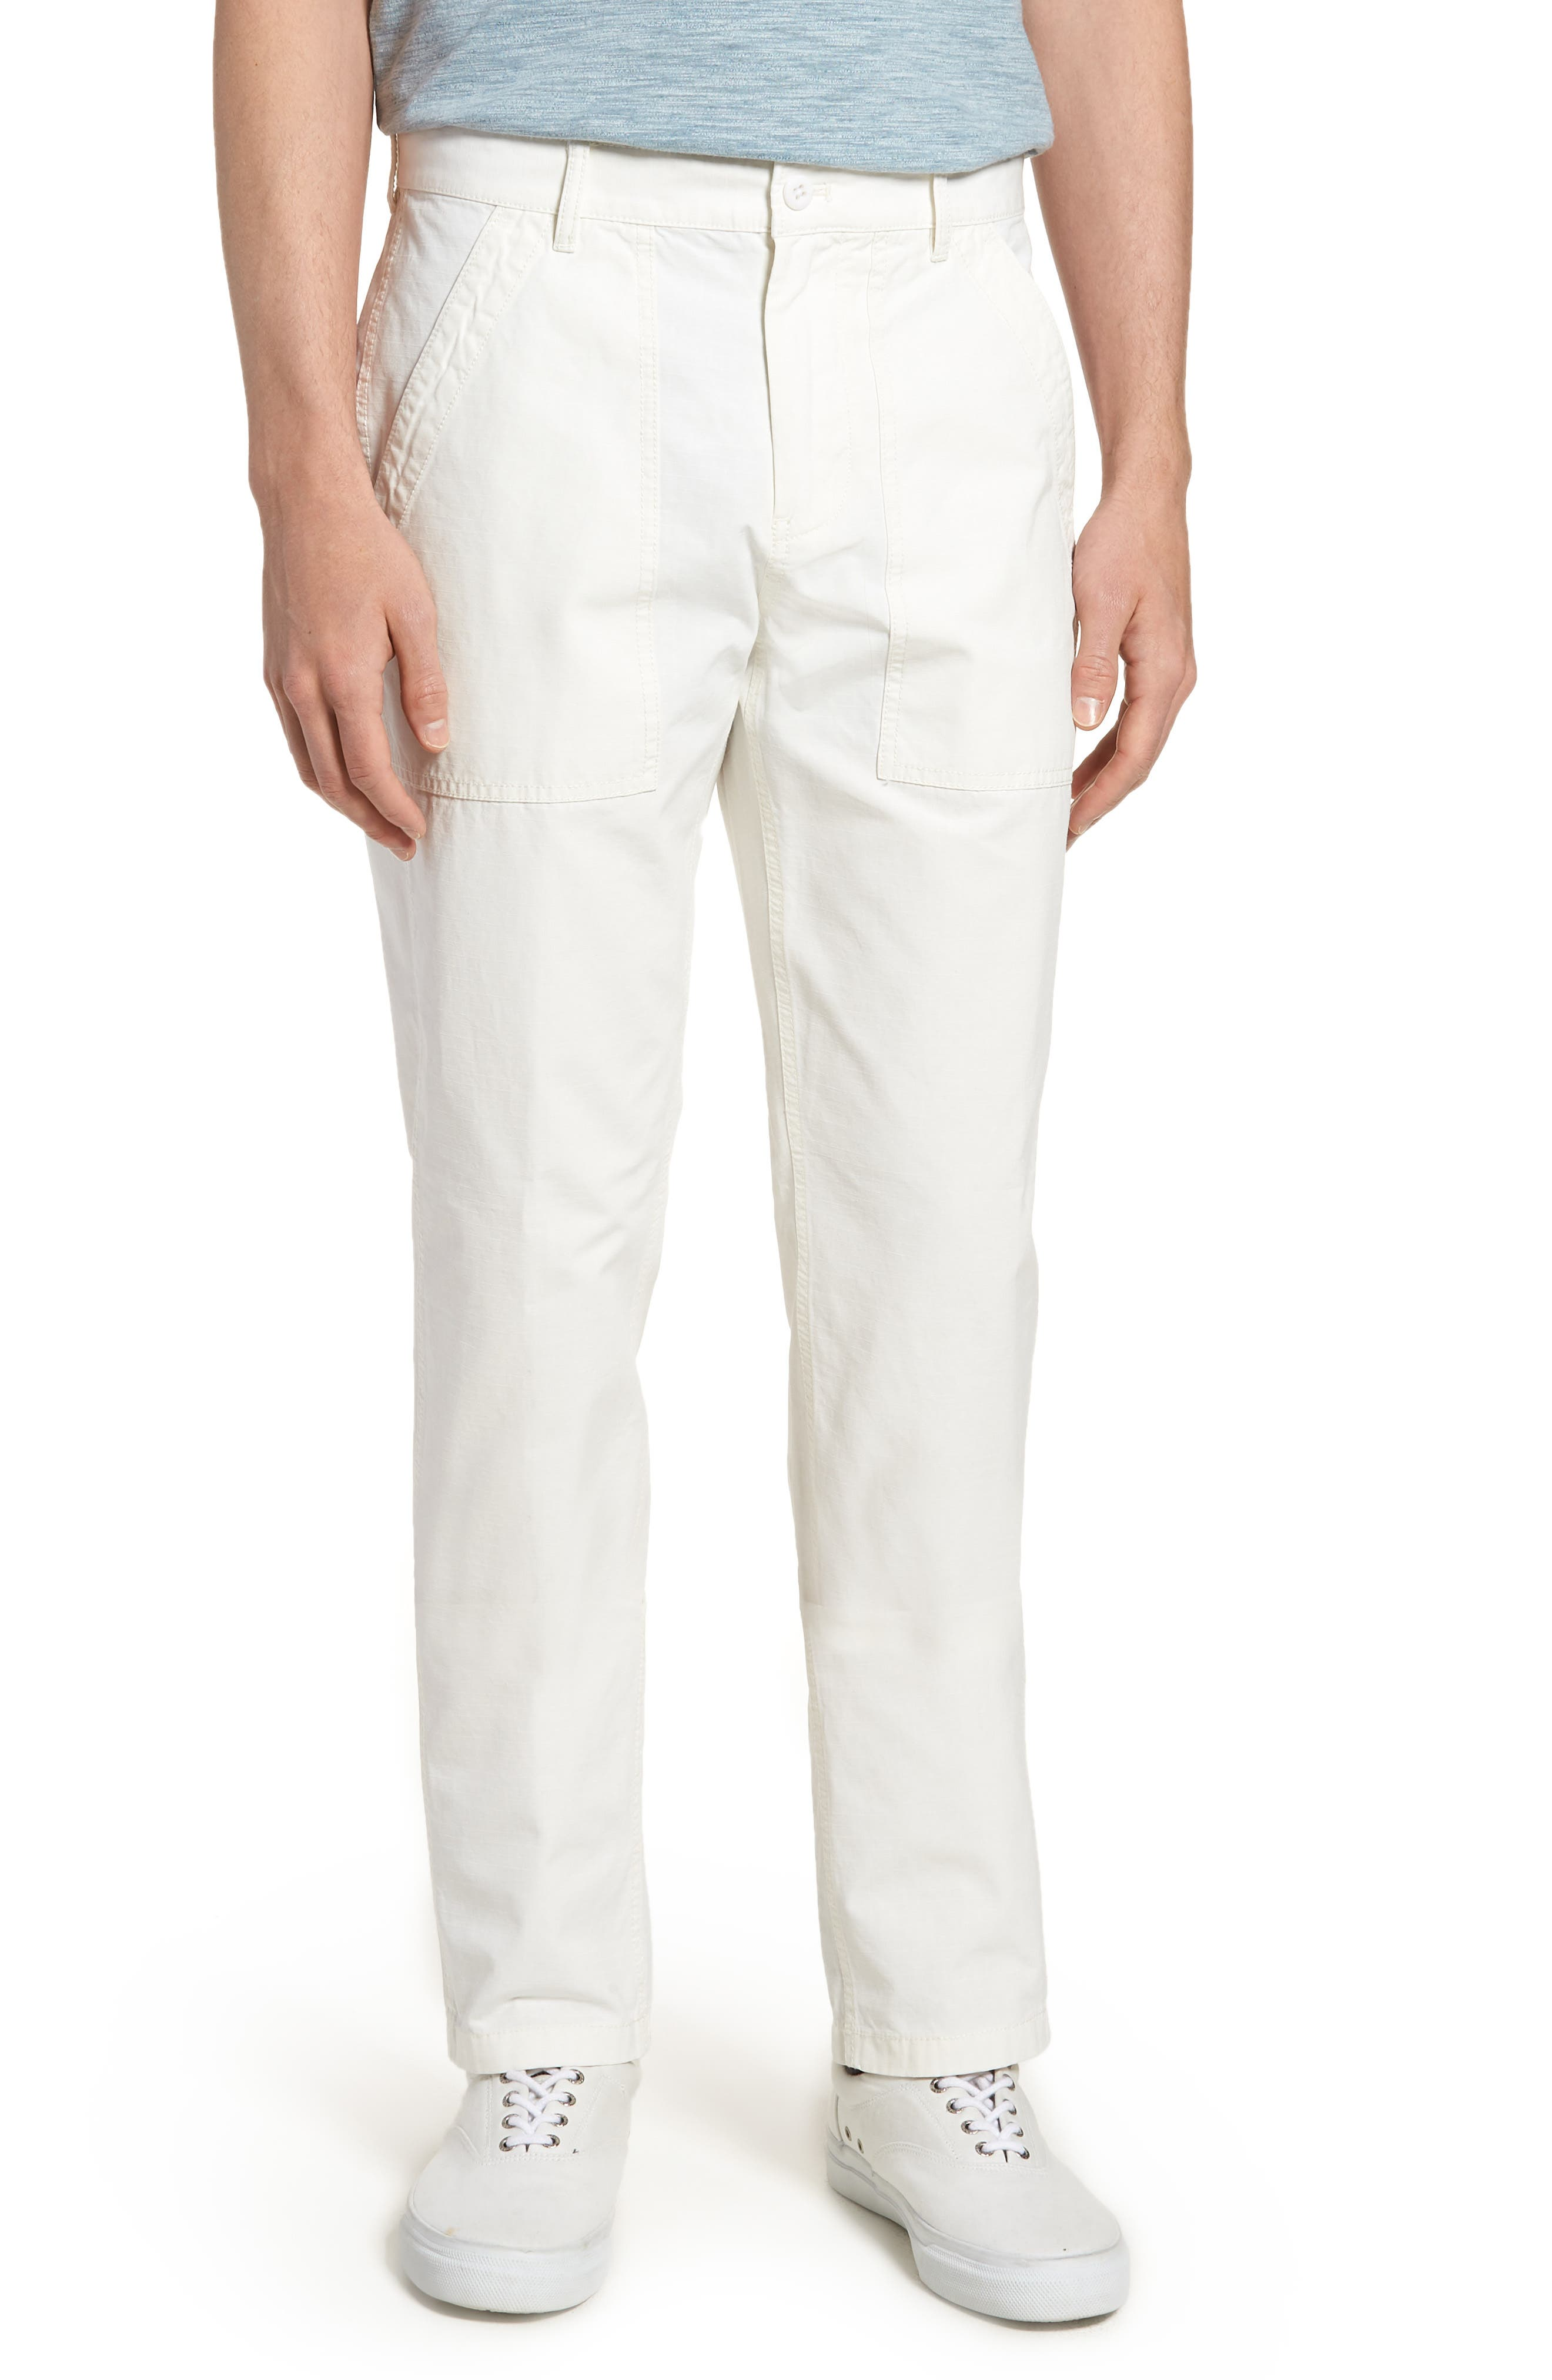 Alternate Image 1 Selected - J.Crew 770 Straight Fit Ripstop Camp Pants